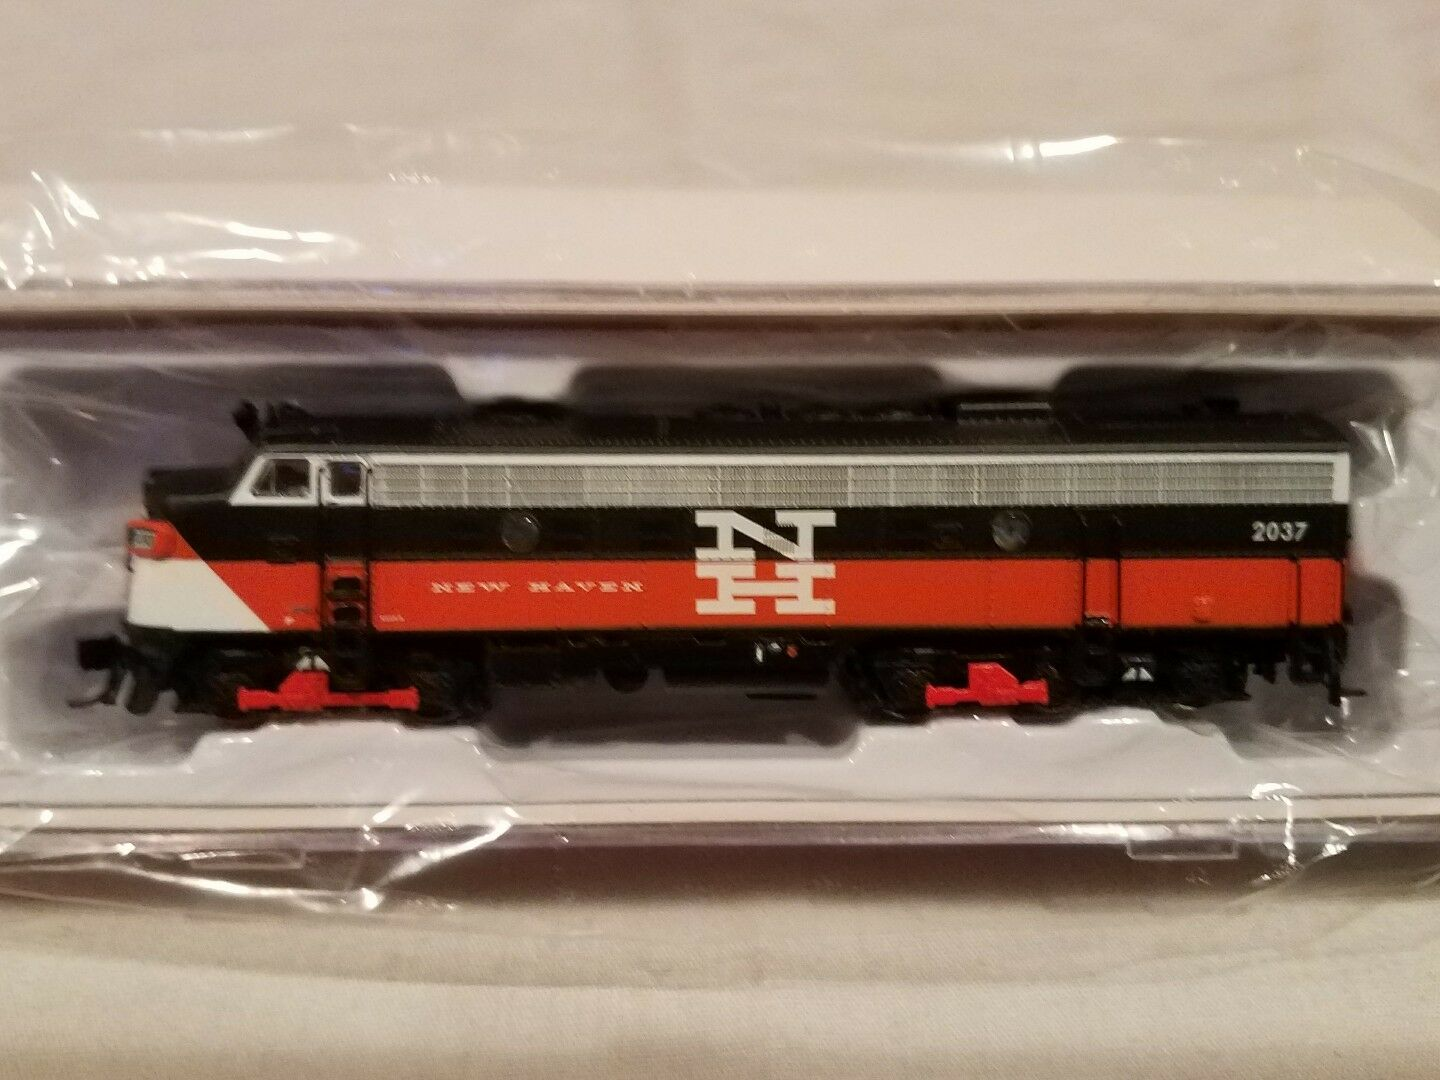 N SCALE RAPIDO TRAINS 15520 EMD FL9 NH EDER-5A  2037 DCC SOUND EQUIPPED NEW